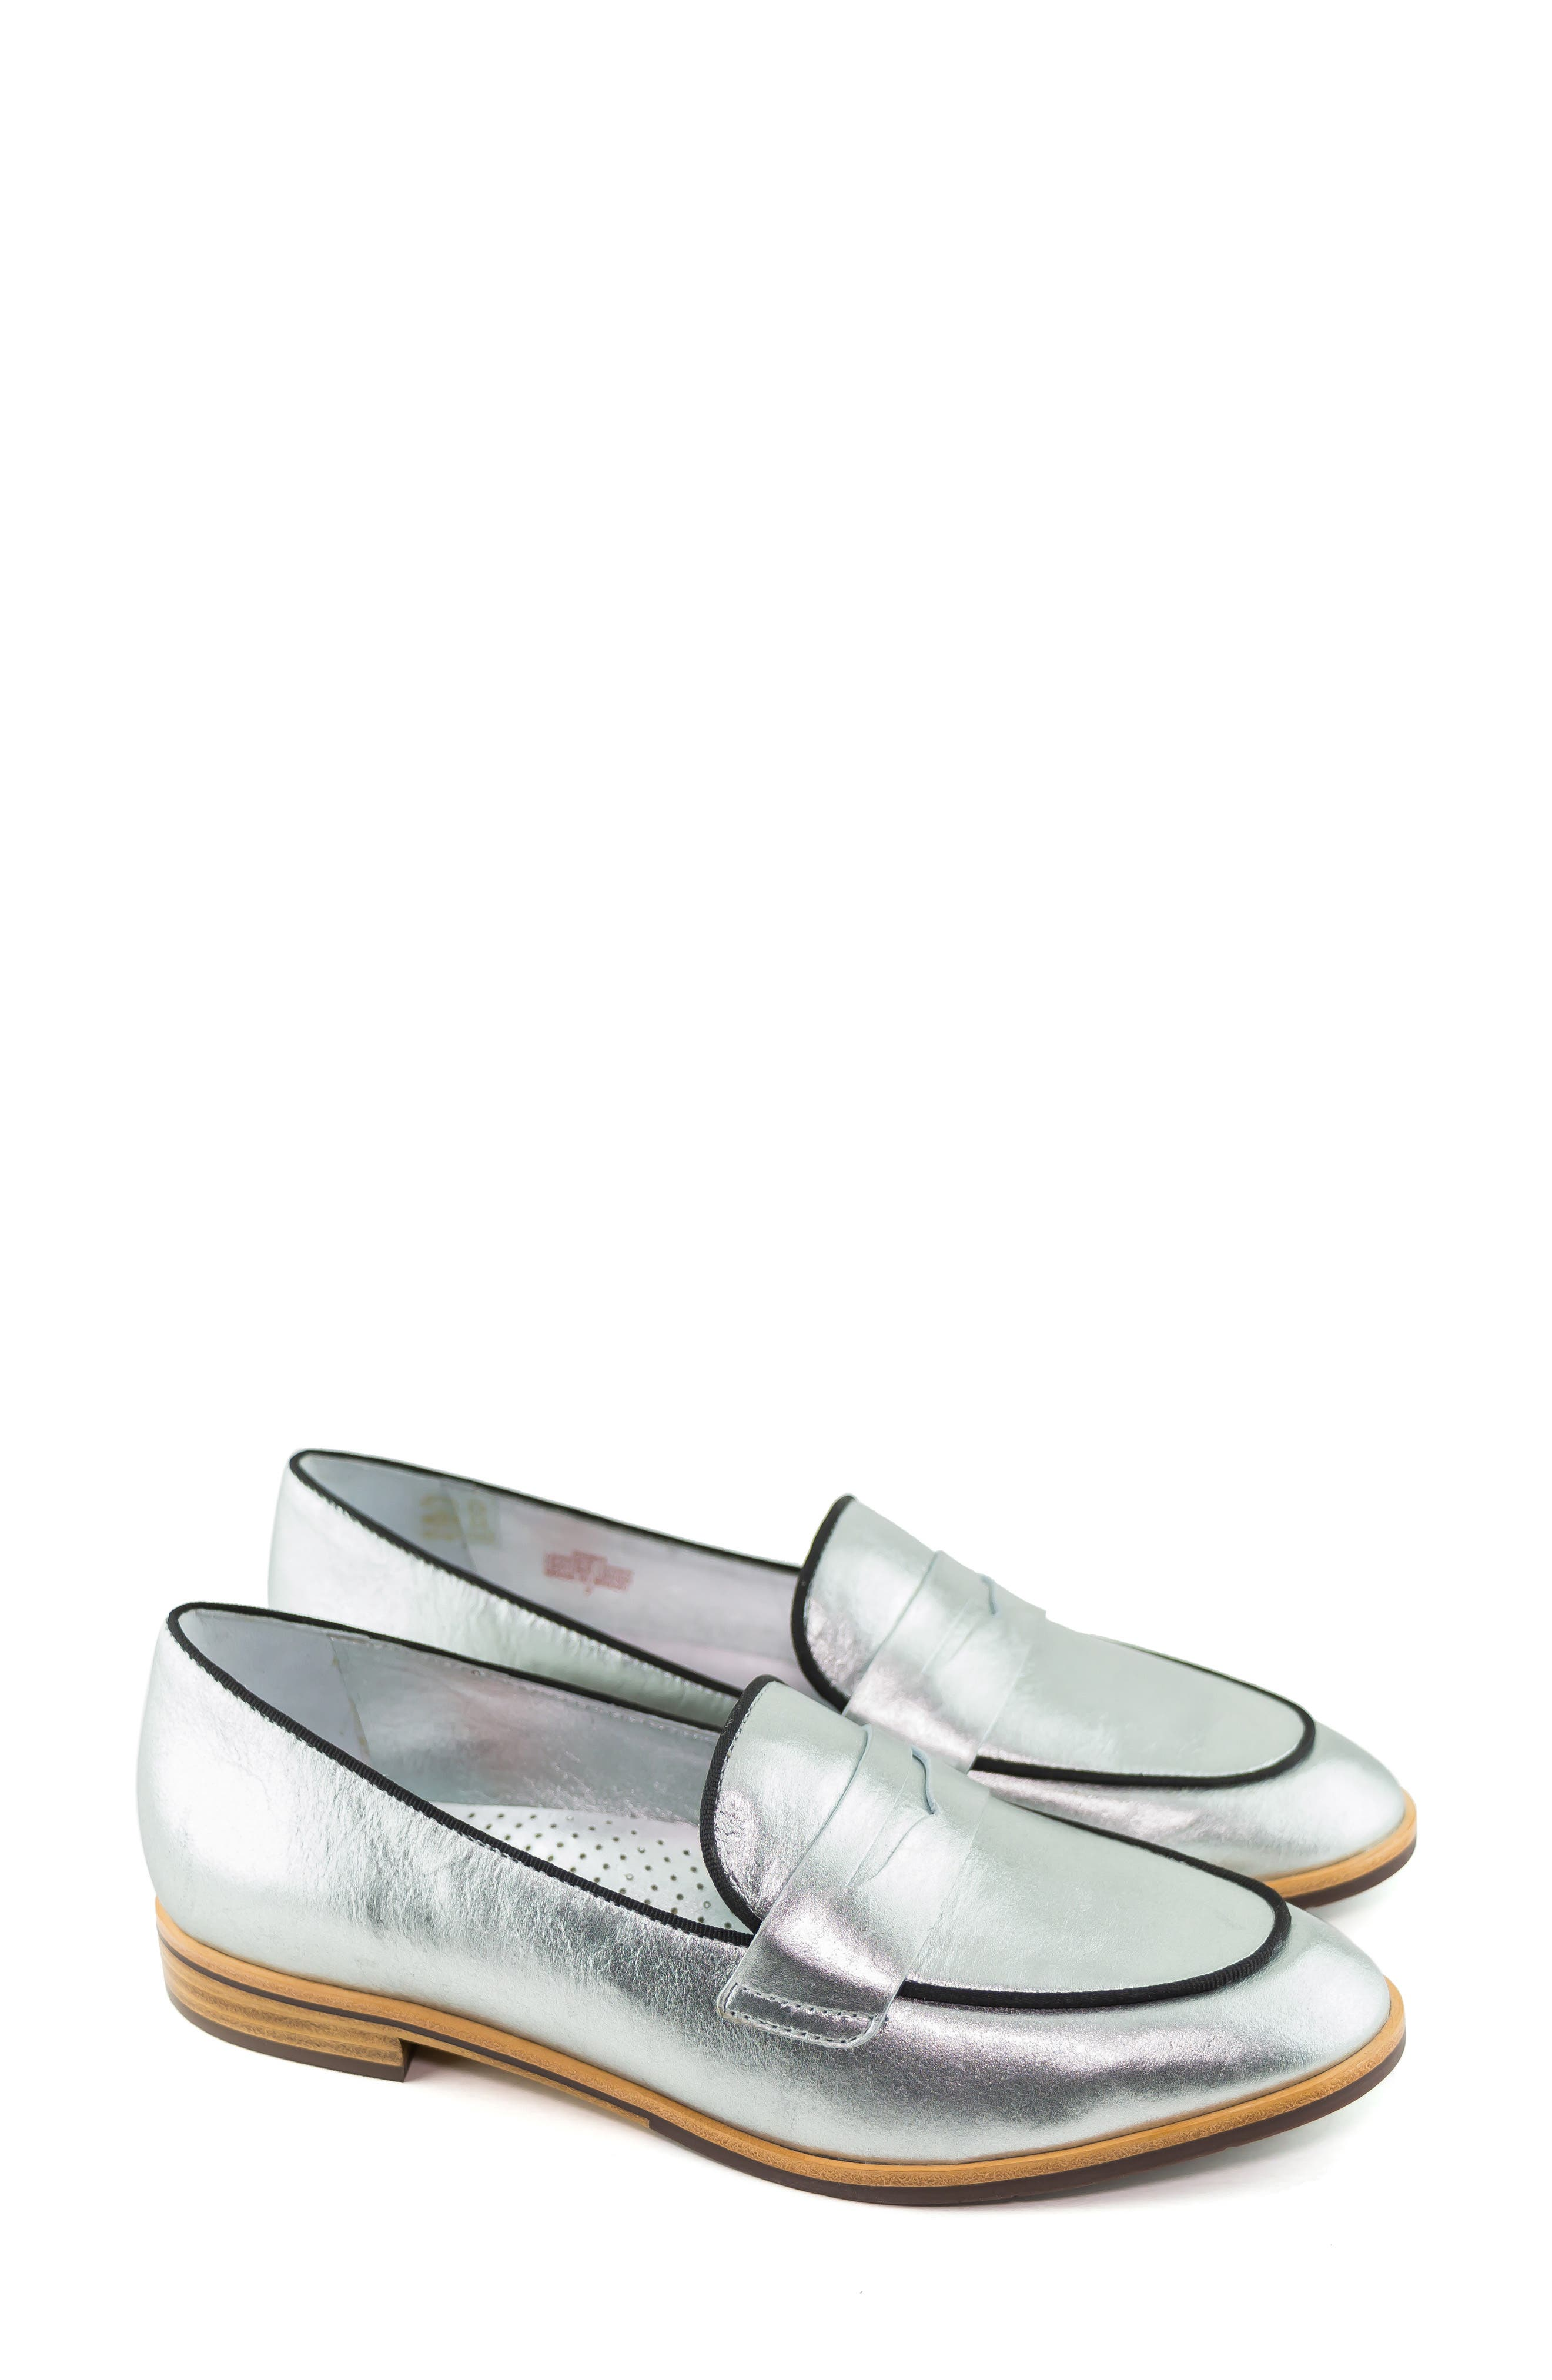 Bryant Park Loafer,                             Alternate thumbnail 7, color,                             GIPSY SILVER LEATHER